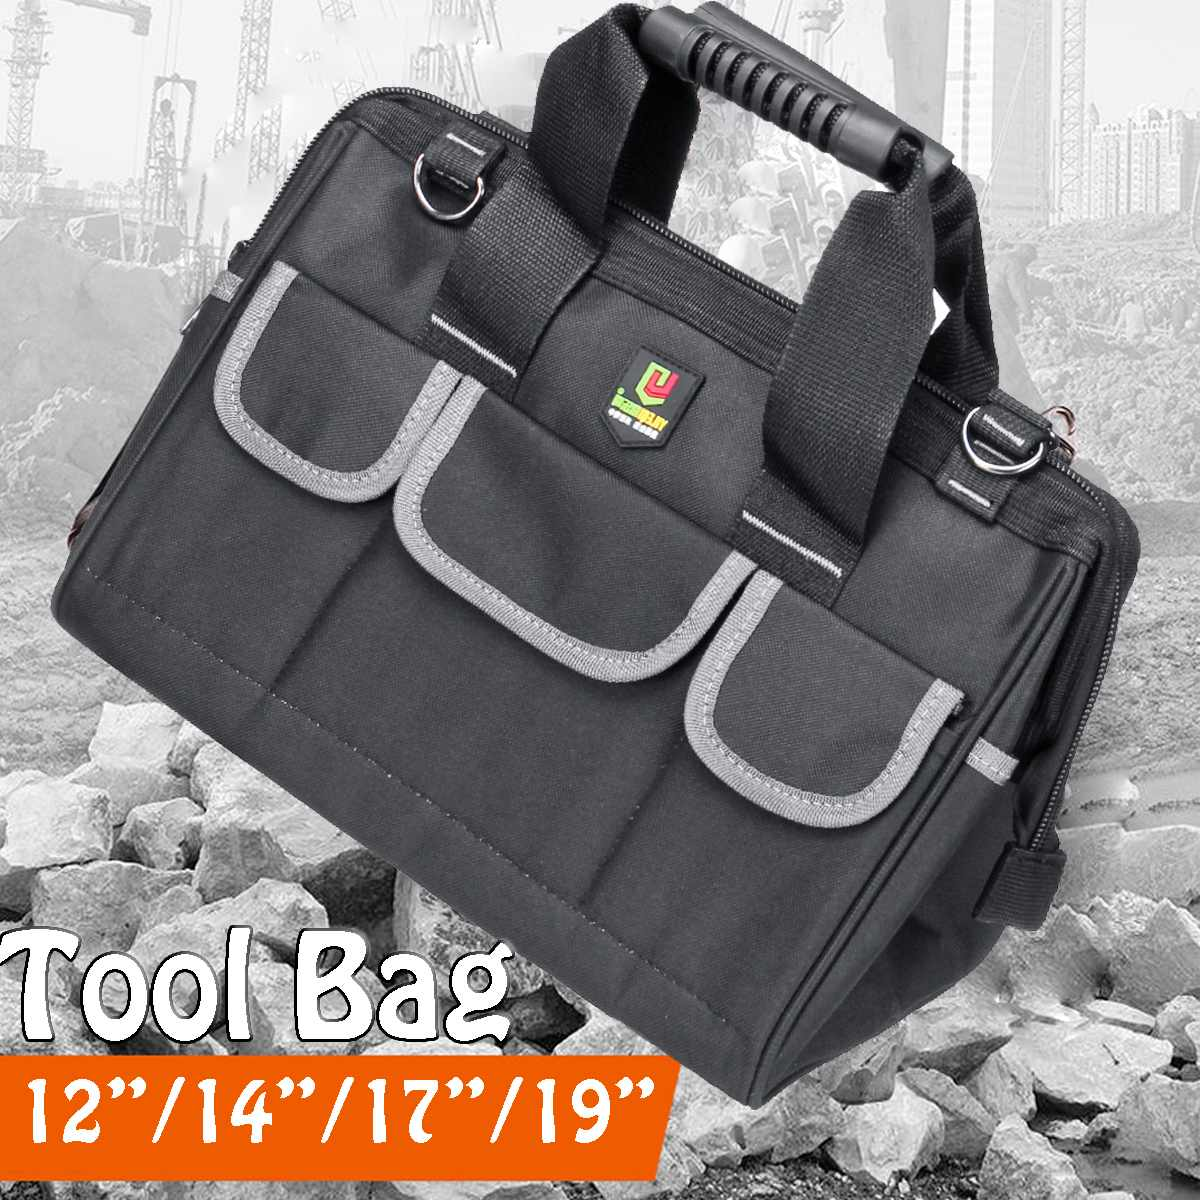 19 17 14 12inch Tool Bag Oxford Waterproof Hand Tool Storage Bag Electrician Bags Large Capacity Tool Organizer Pouch Bag Case